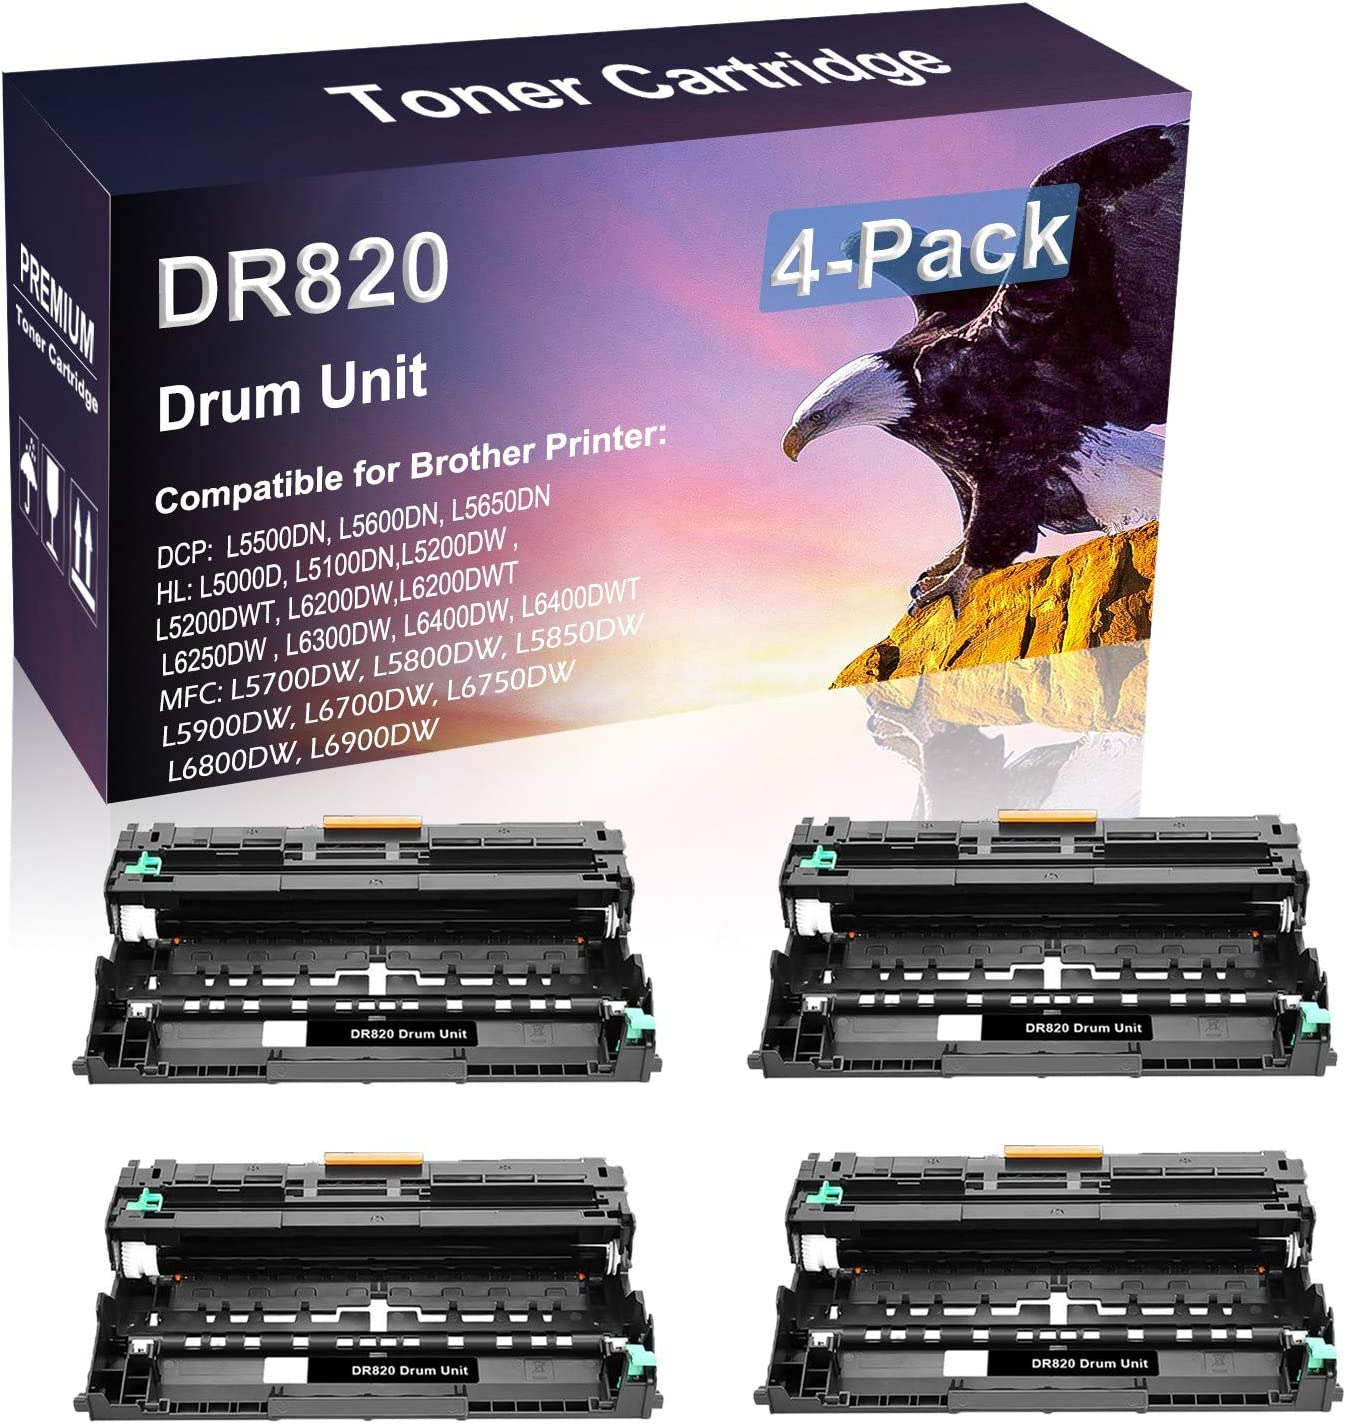 4 Pack Compatible High Yield DR820 DR-820 Drum Unit use for Brother MFC-L5700DW MFC-L5800DW Printer